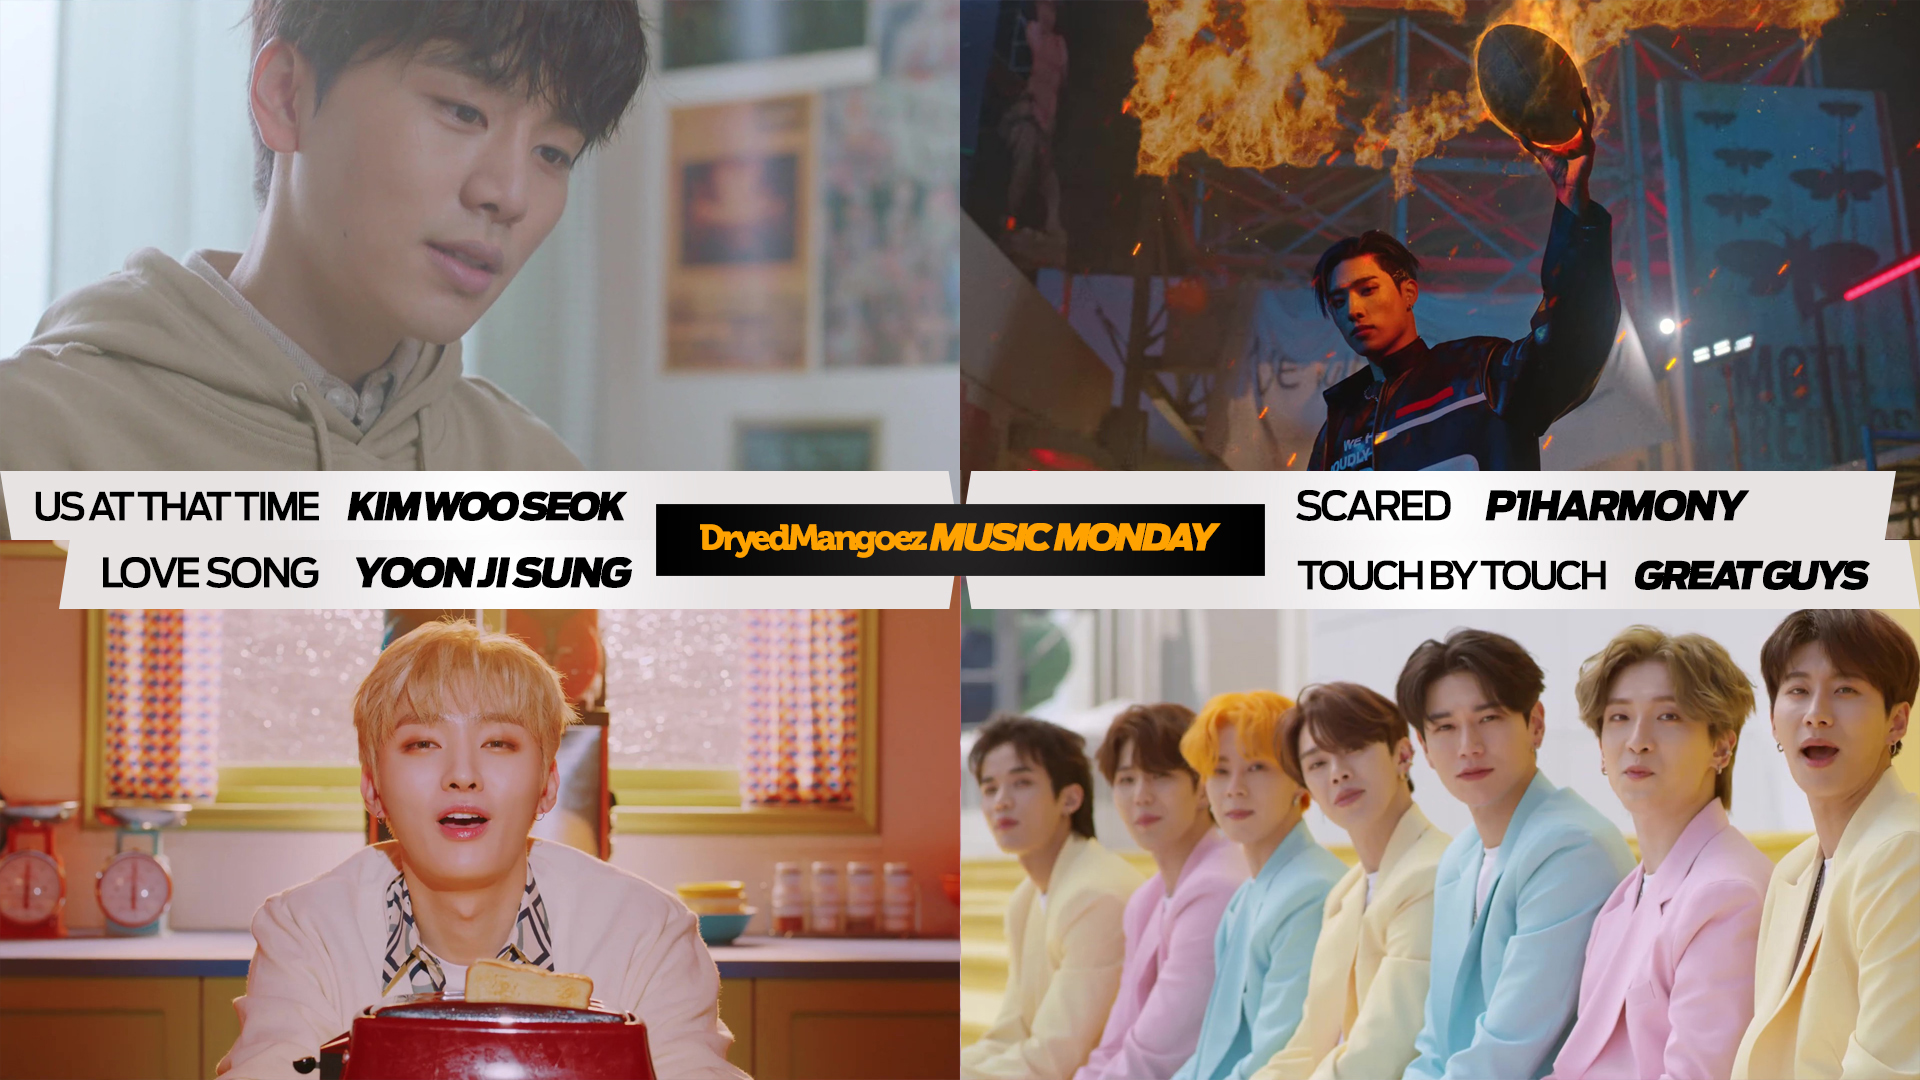 Music Monday, April 26, 2021 – A Diverse Quartet of Great Songs from actor Kim Woo Seok, P1Harmony, Yoon Jisung, GreatGuys